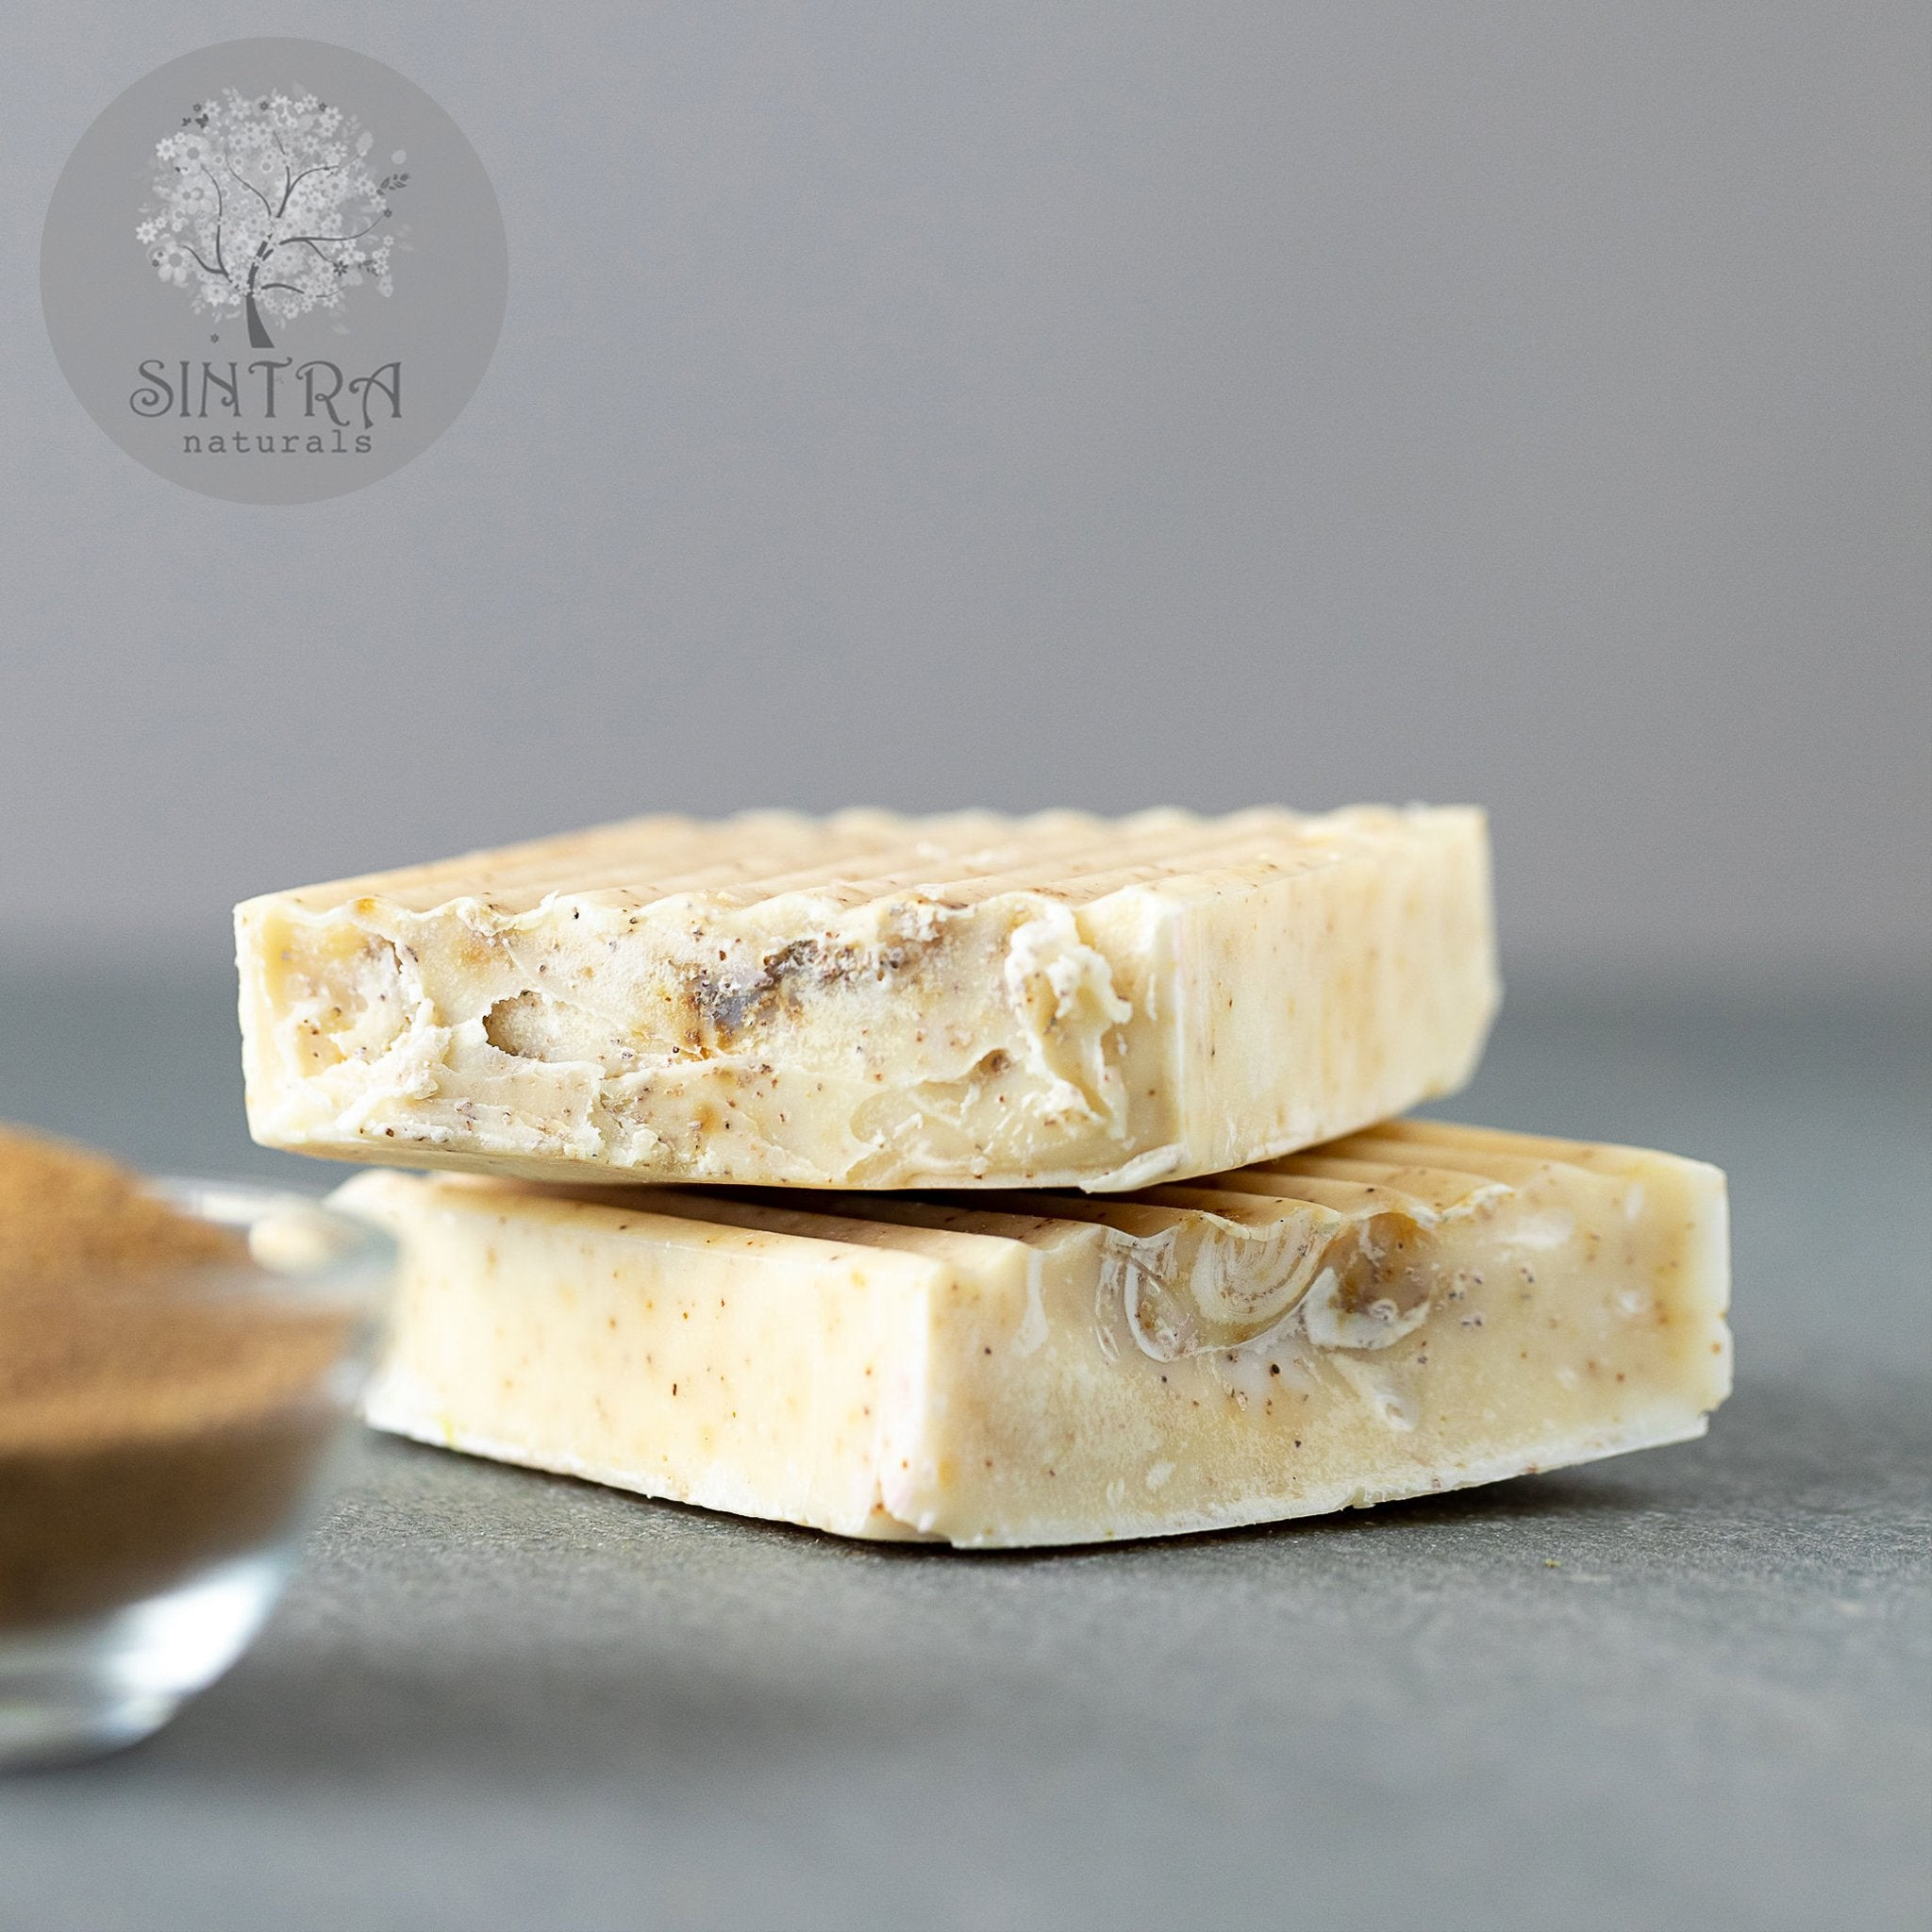 SKIN SAVIOUR soap good for skin conditions like eczema (available to pre-order) - natoorio